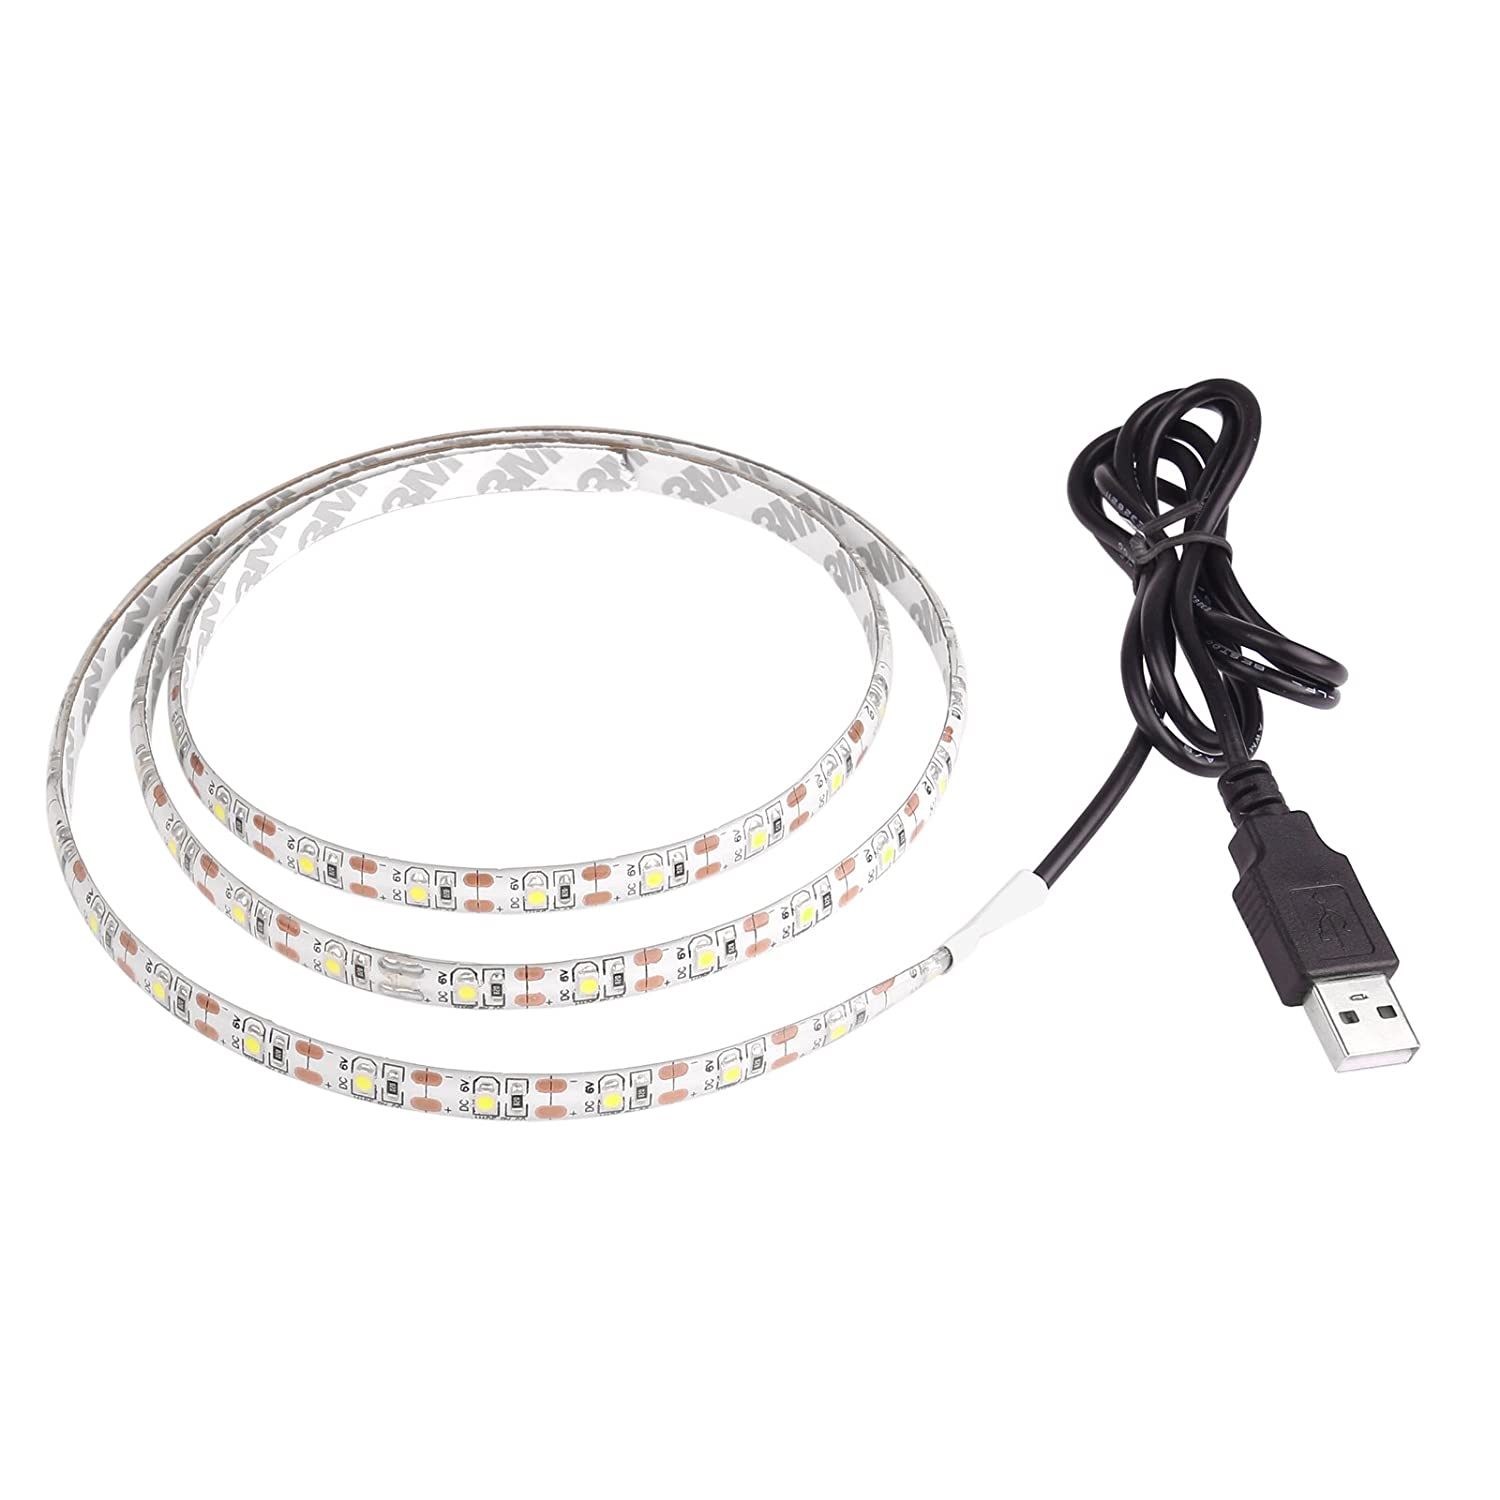 Lemonbest 2m Resin Flexible USB LED Strip Lights 3528smd 120leds 5V Waterproof Soft Warm White